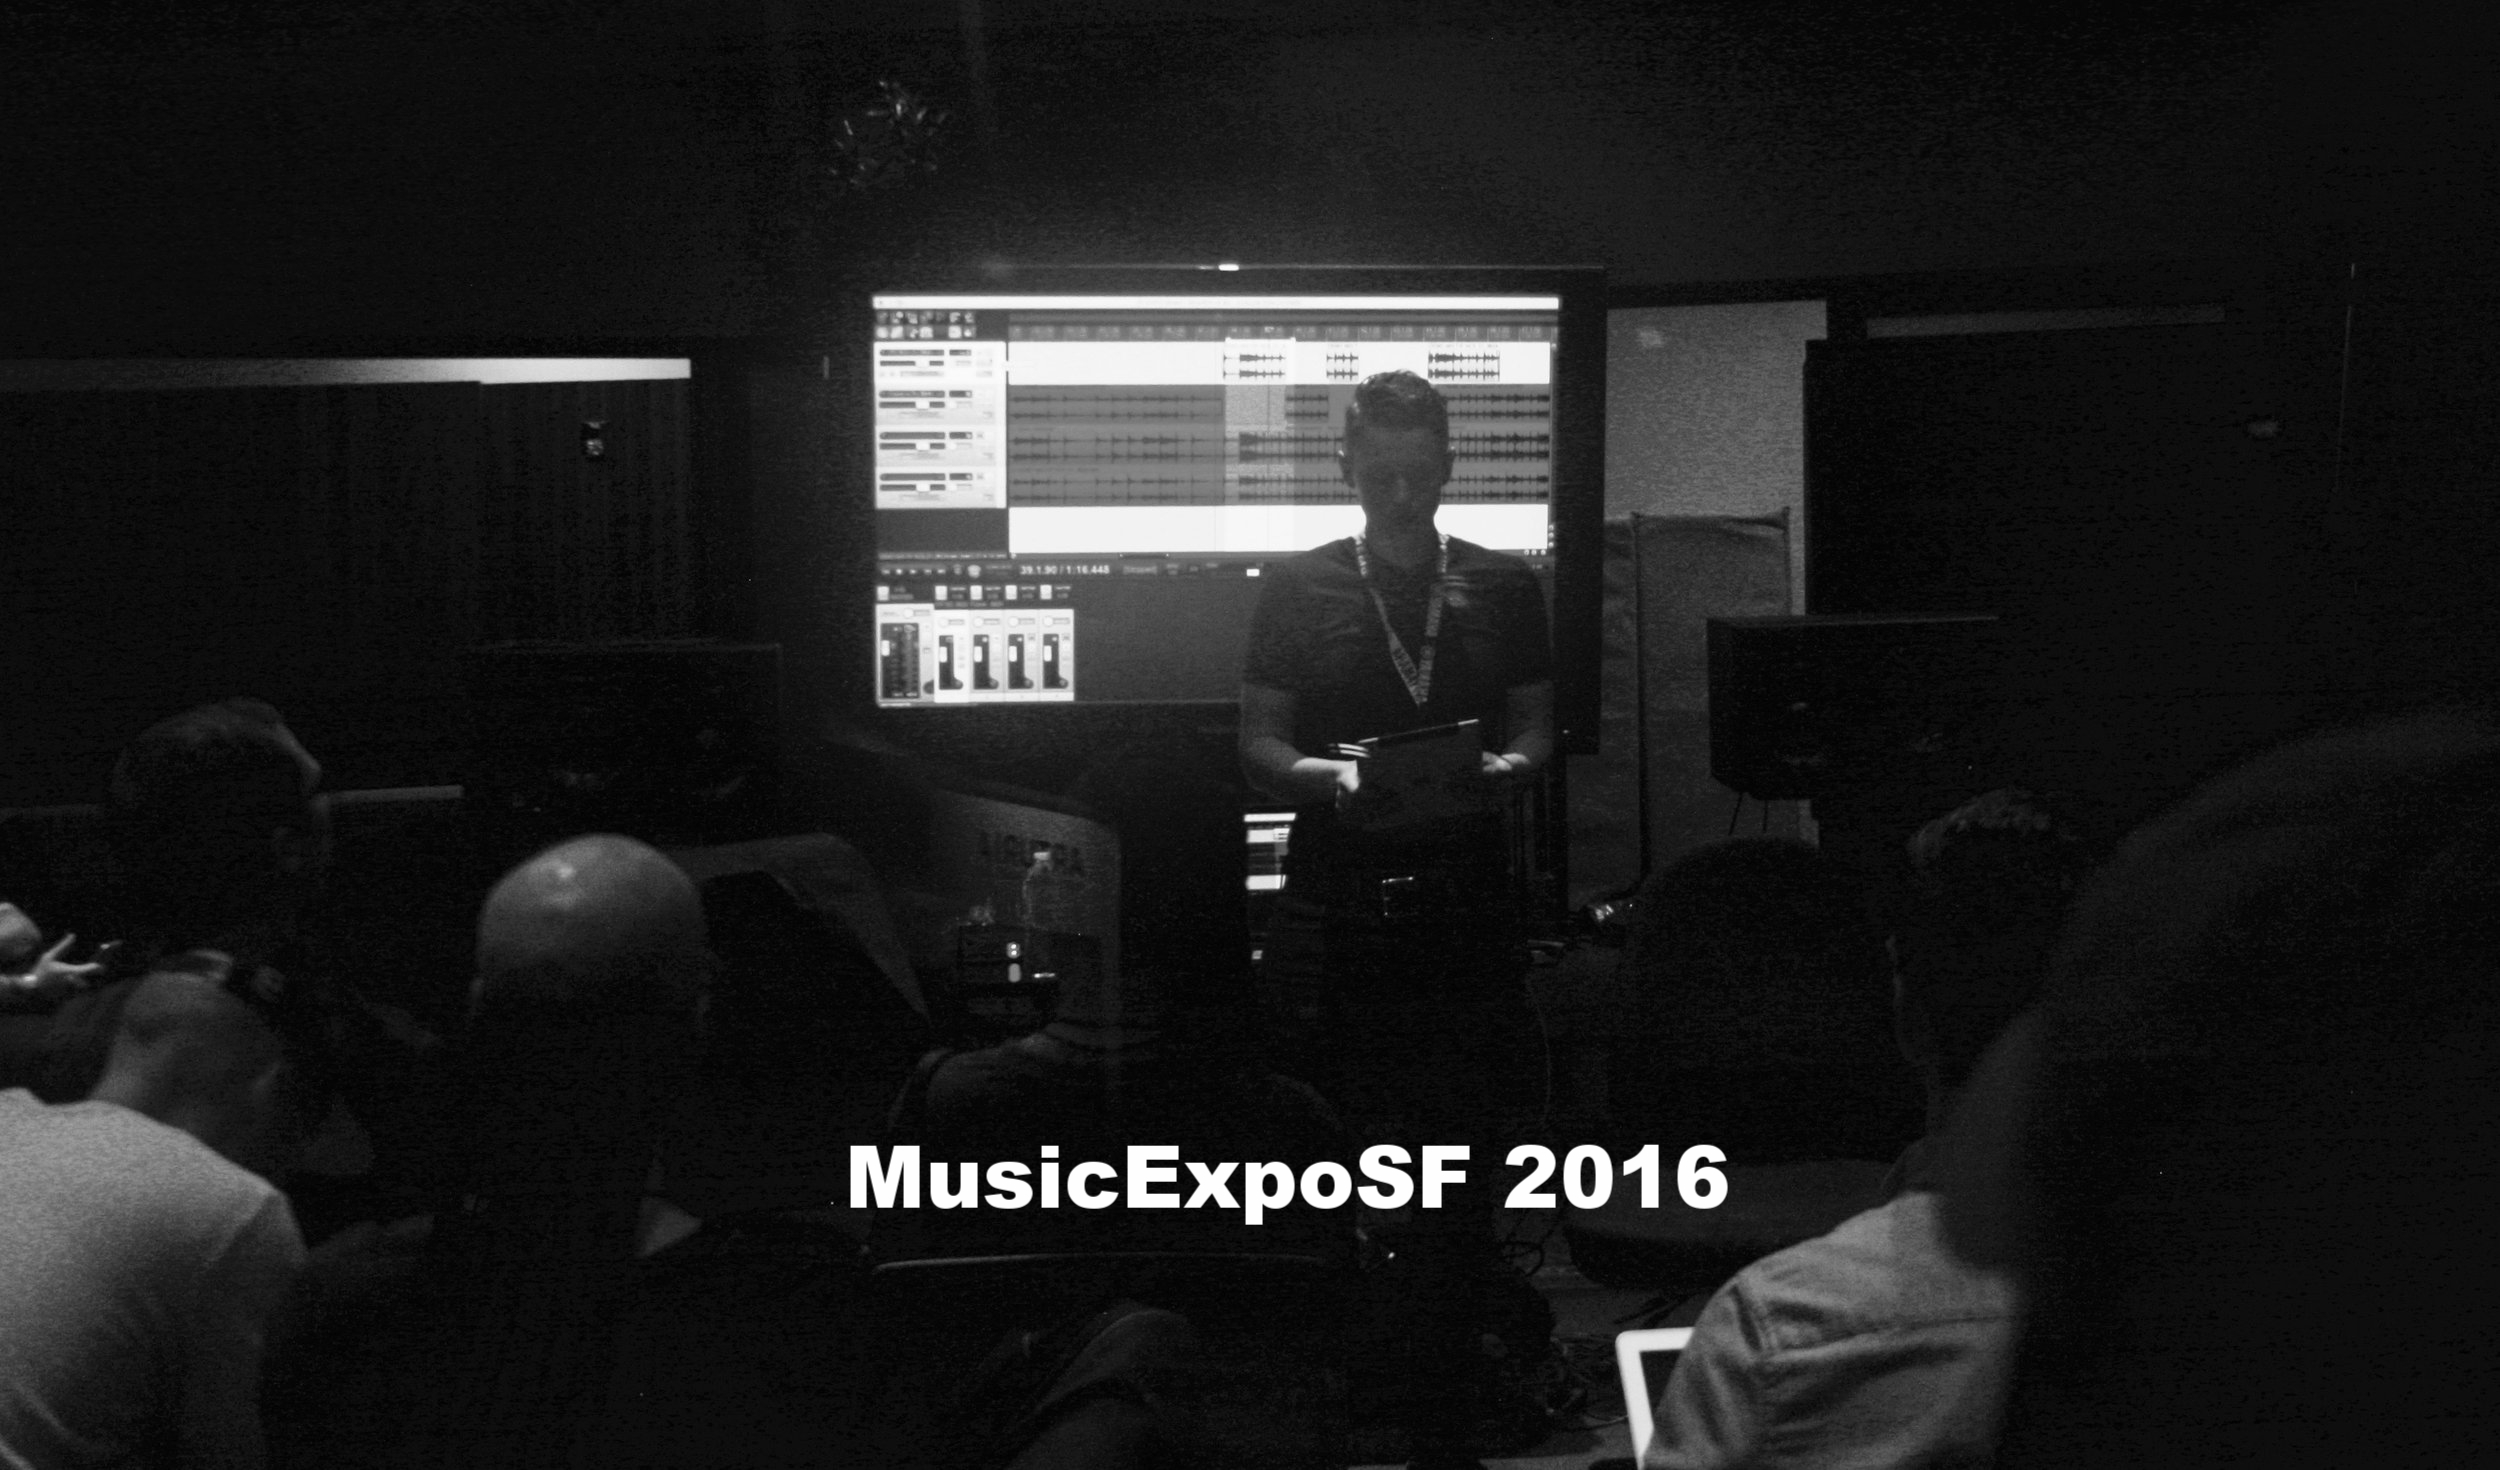 Music Expo SF 2016